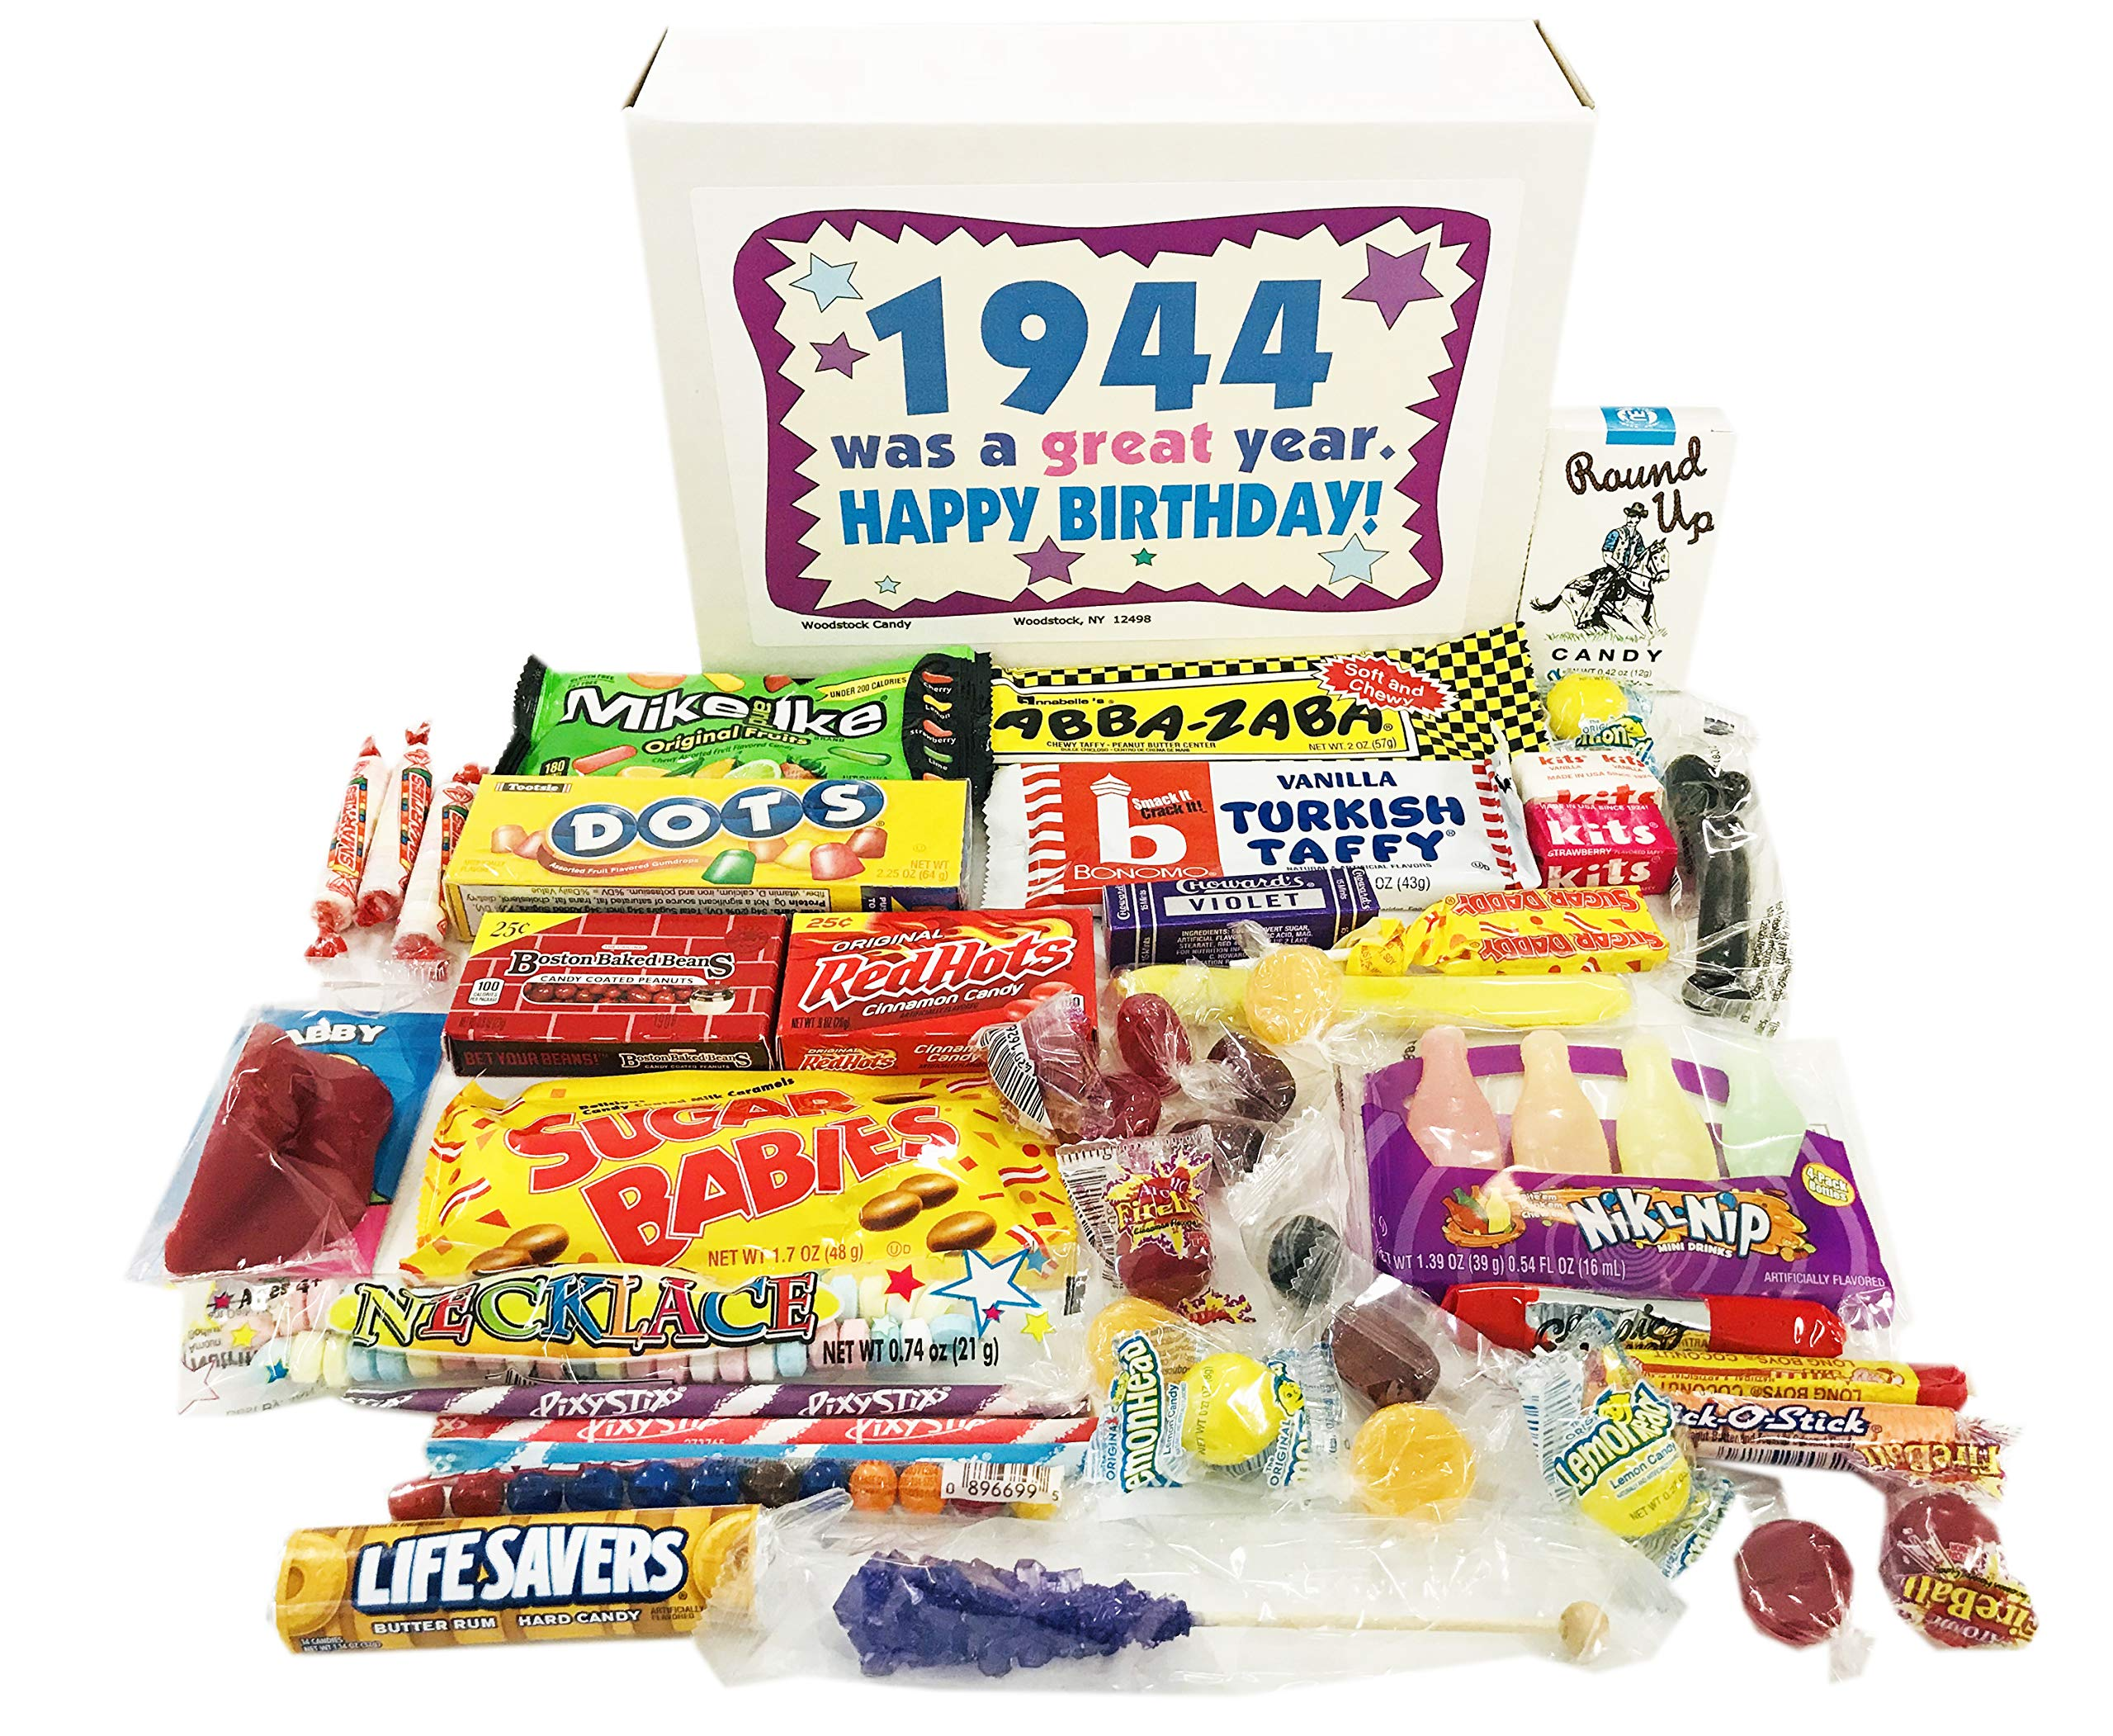 Woodstock Candy ~ 75th Birthday Gift Box of Nostalgic Retro Candy from Childhood for 75 Year Old Man or Woman Born 1944 Jr by Woodstock Candy